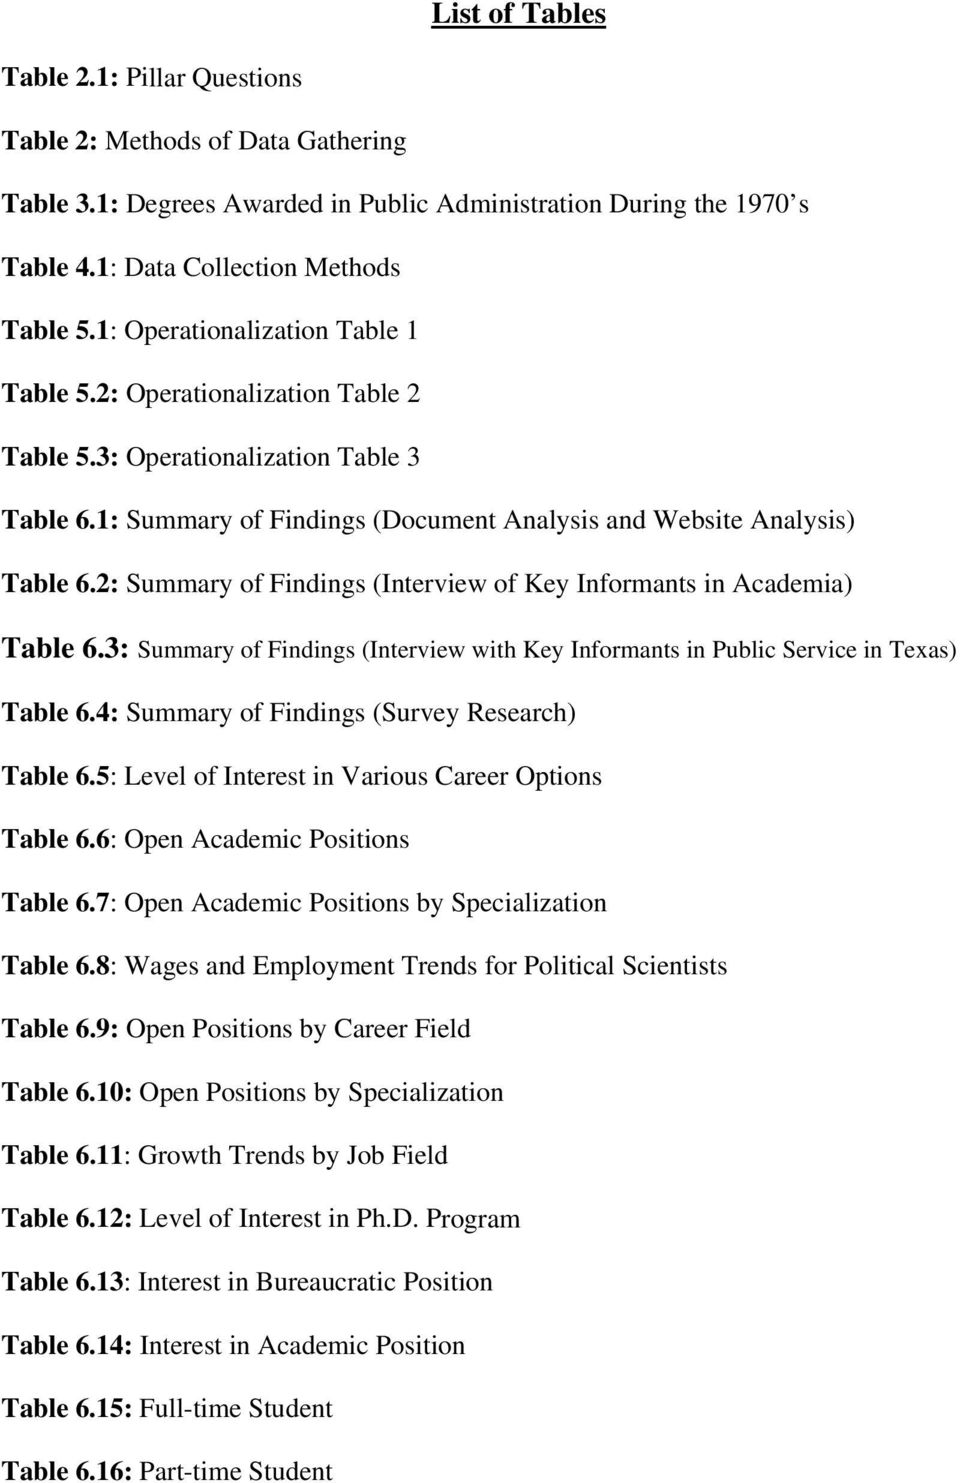 2: Summary of Findings (Interview of Key Informants in Academia) Table 6.3: Summary of Findings (Interview with Key Informants in Public Service in Texas) Table 6.